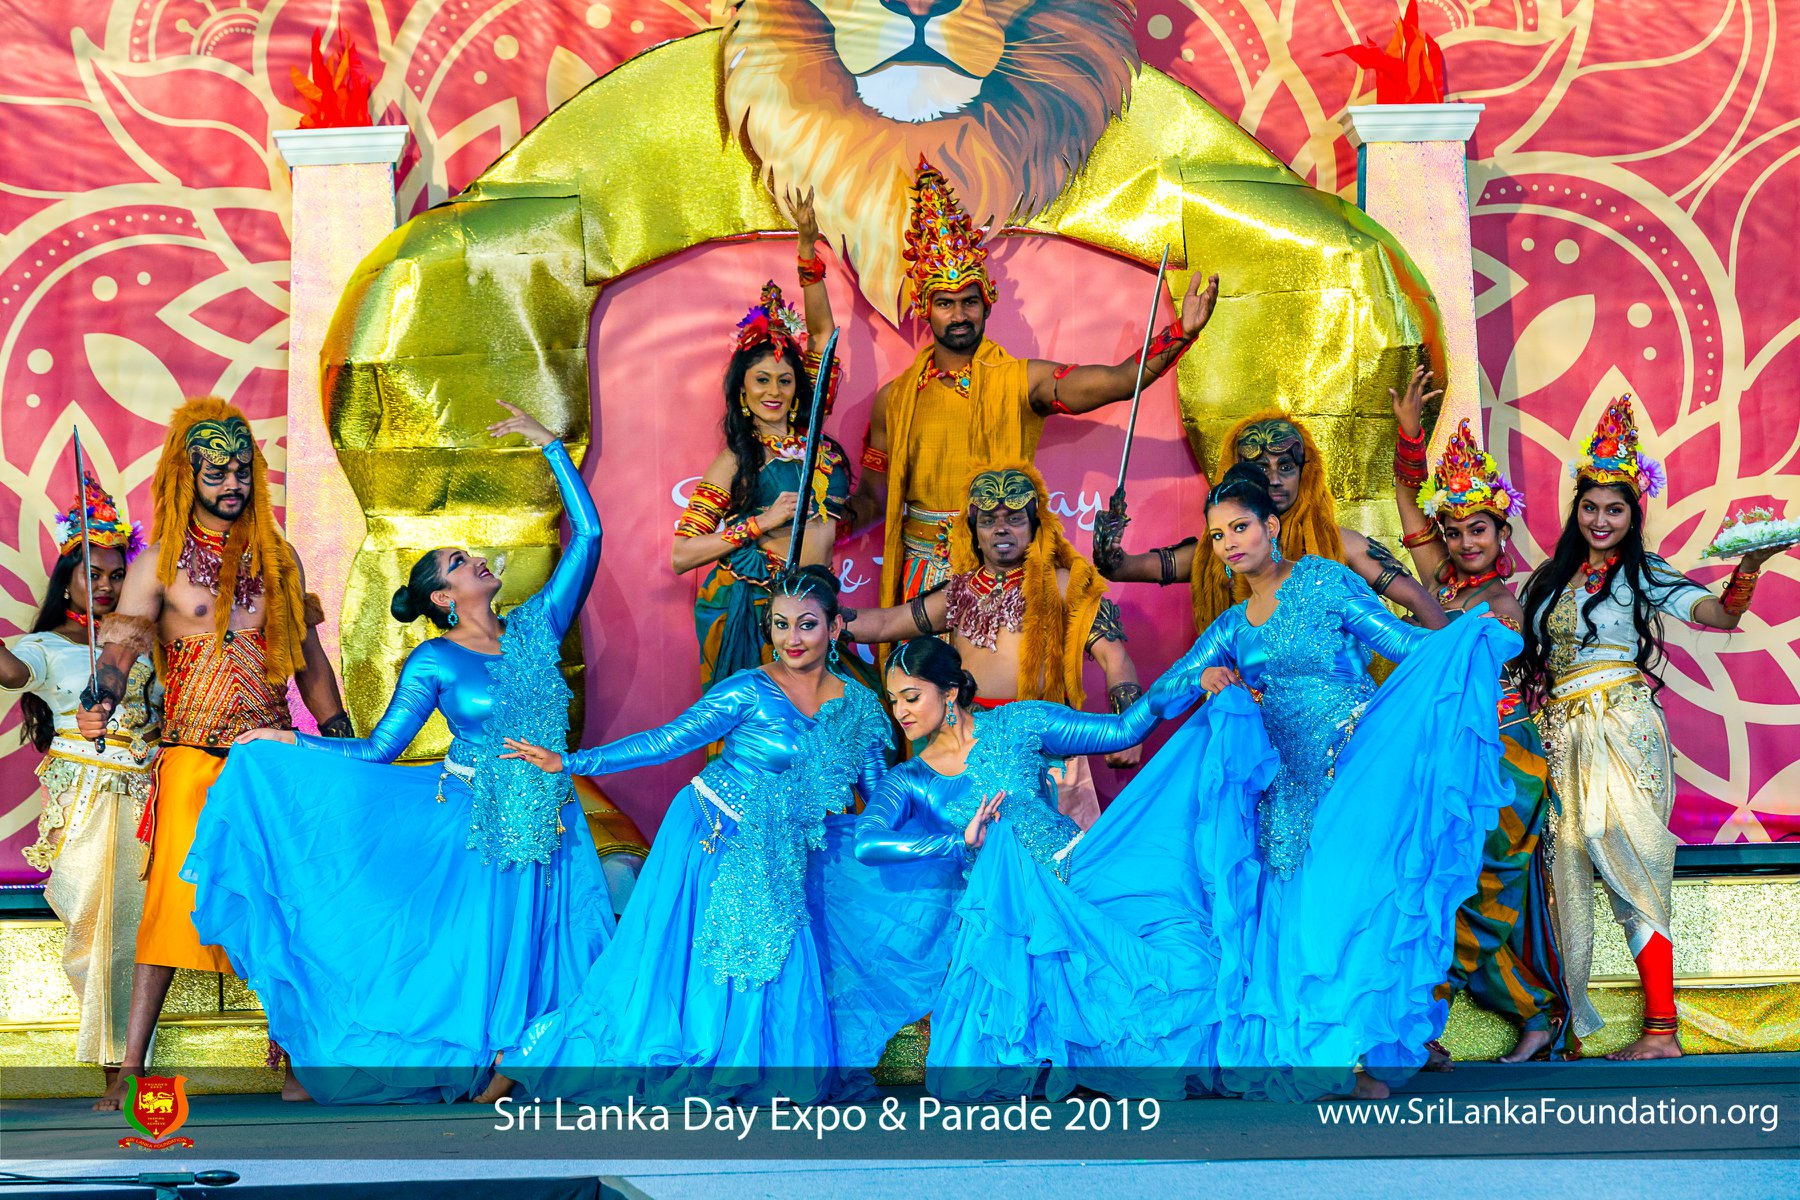 Sri Lanka Day 2019